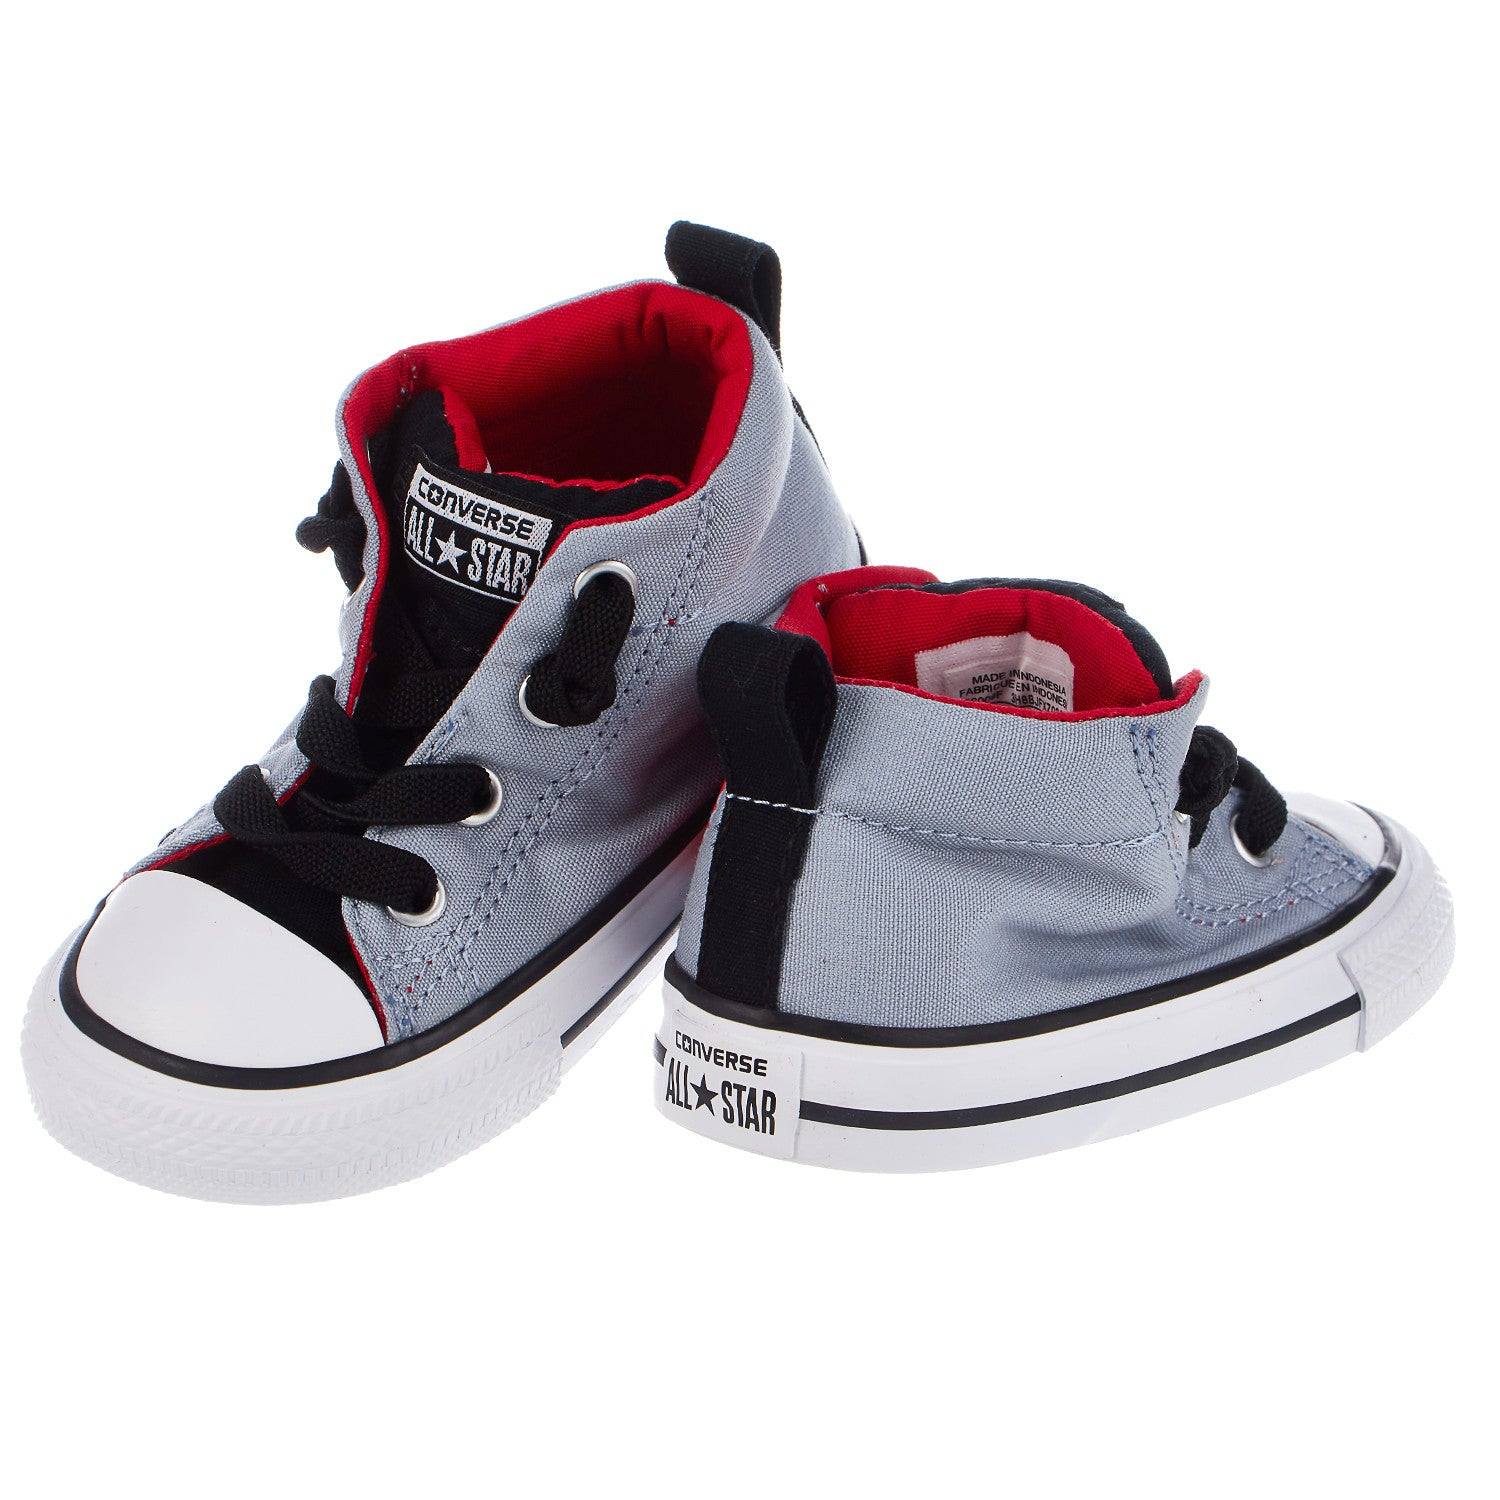 abf8d3be081 Converse Chuck Taylor All Star Street Mid Top - Infant Toddler -  Shoplifestyle